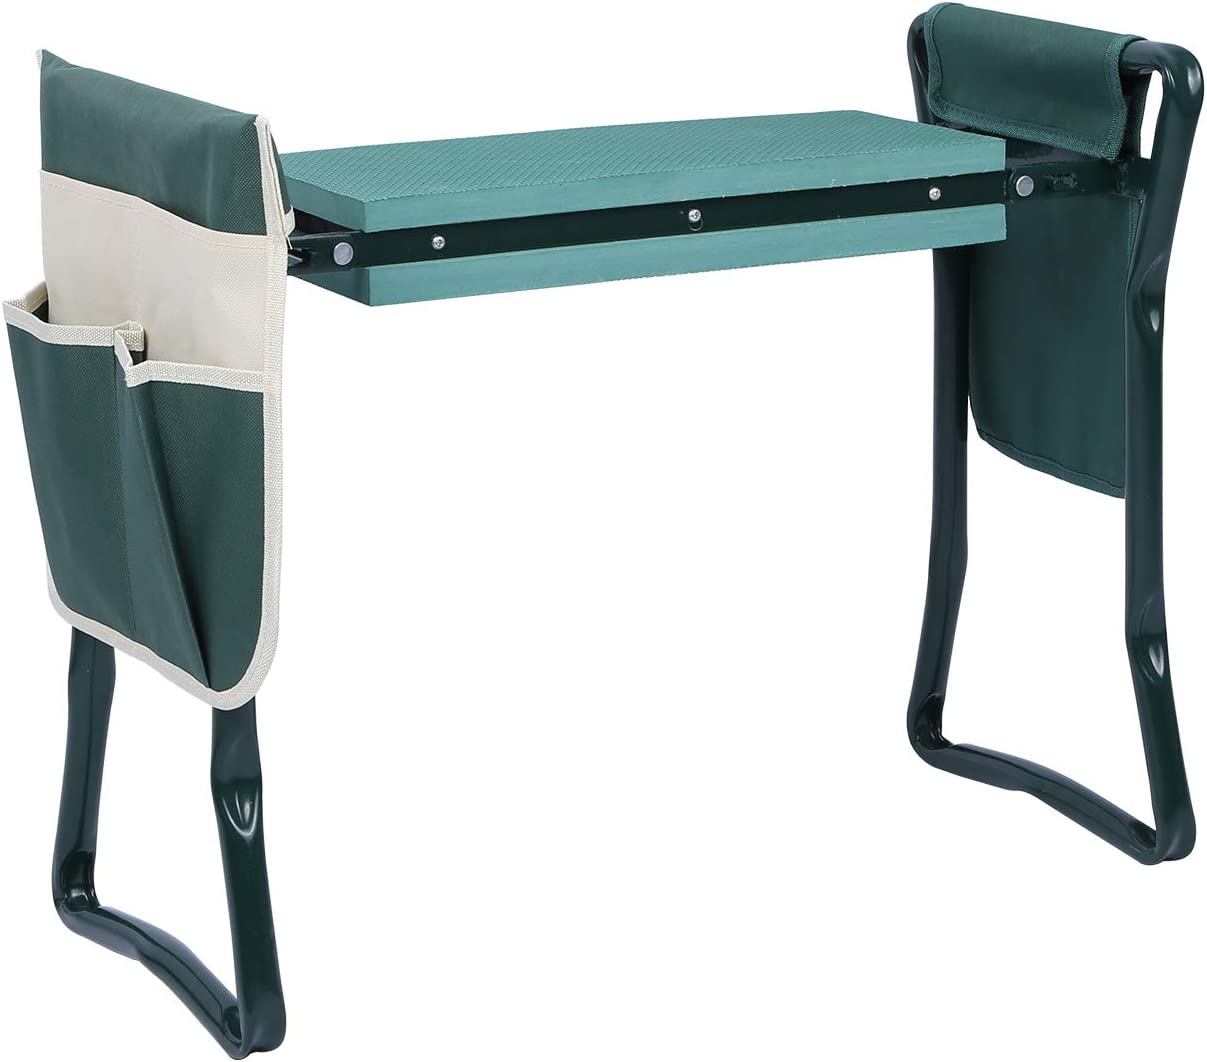 CAMPMOON Foldable Garden Kneeler and Seat Heavy Duty, Lightweight Sturdy Metal Garden Stool for Seniors, Padding Kneeling Bench for Gardening, Green